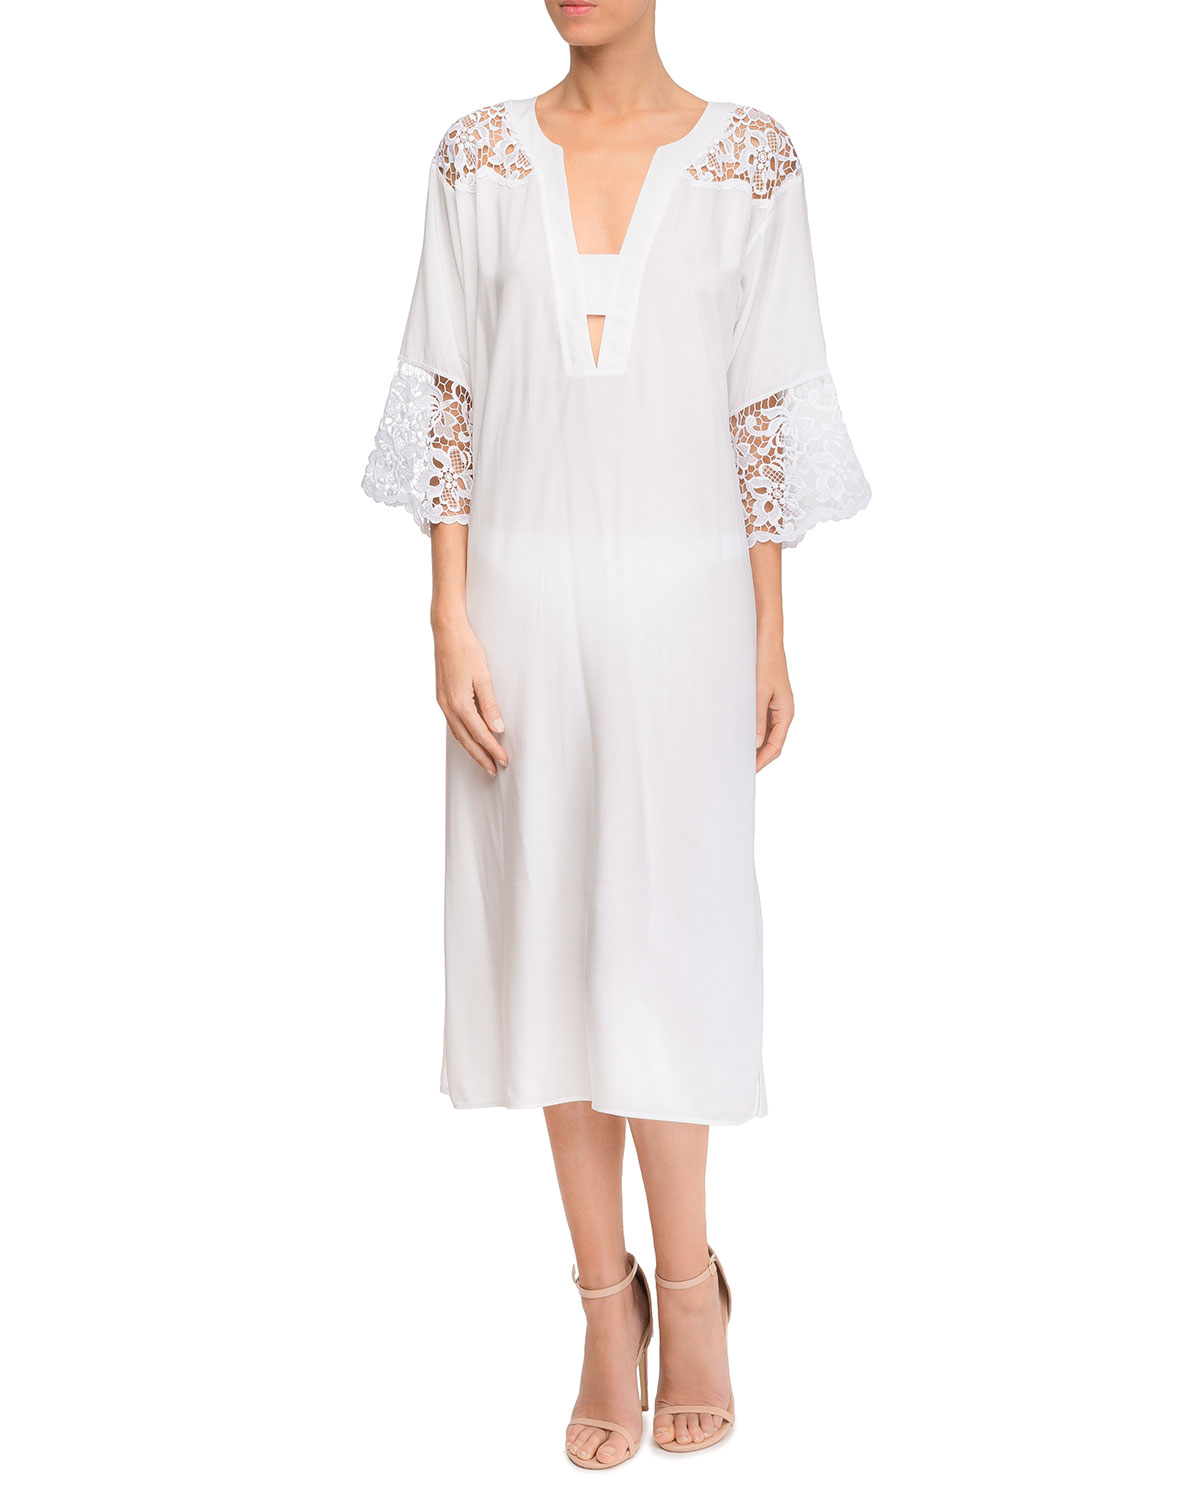 Plunging Coverup Dress with Lace Insets